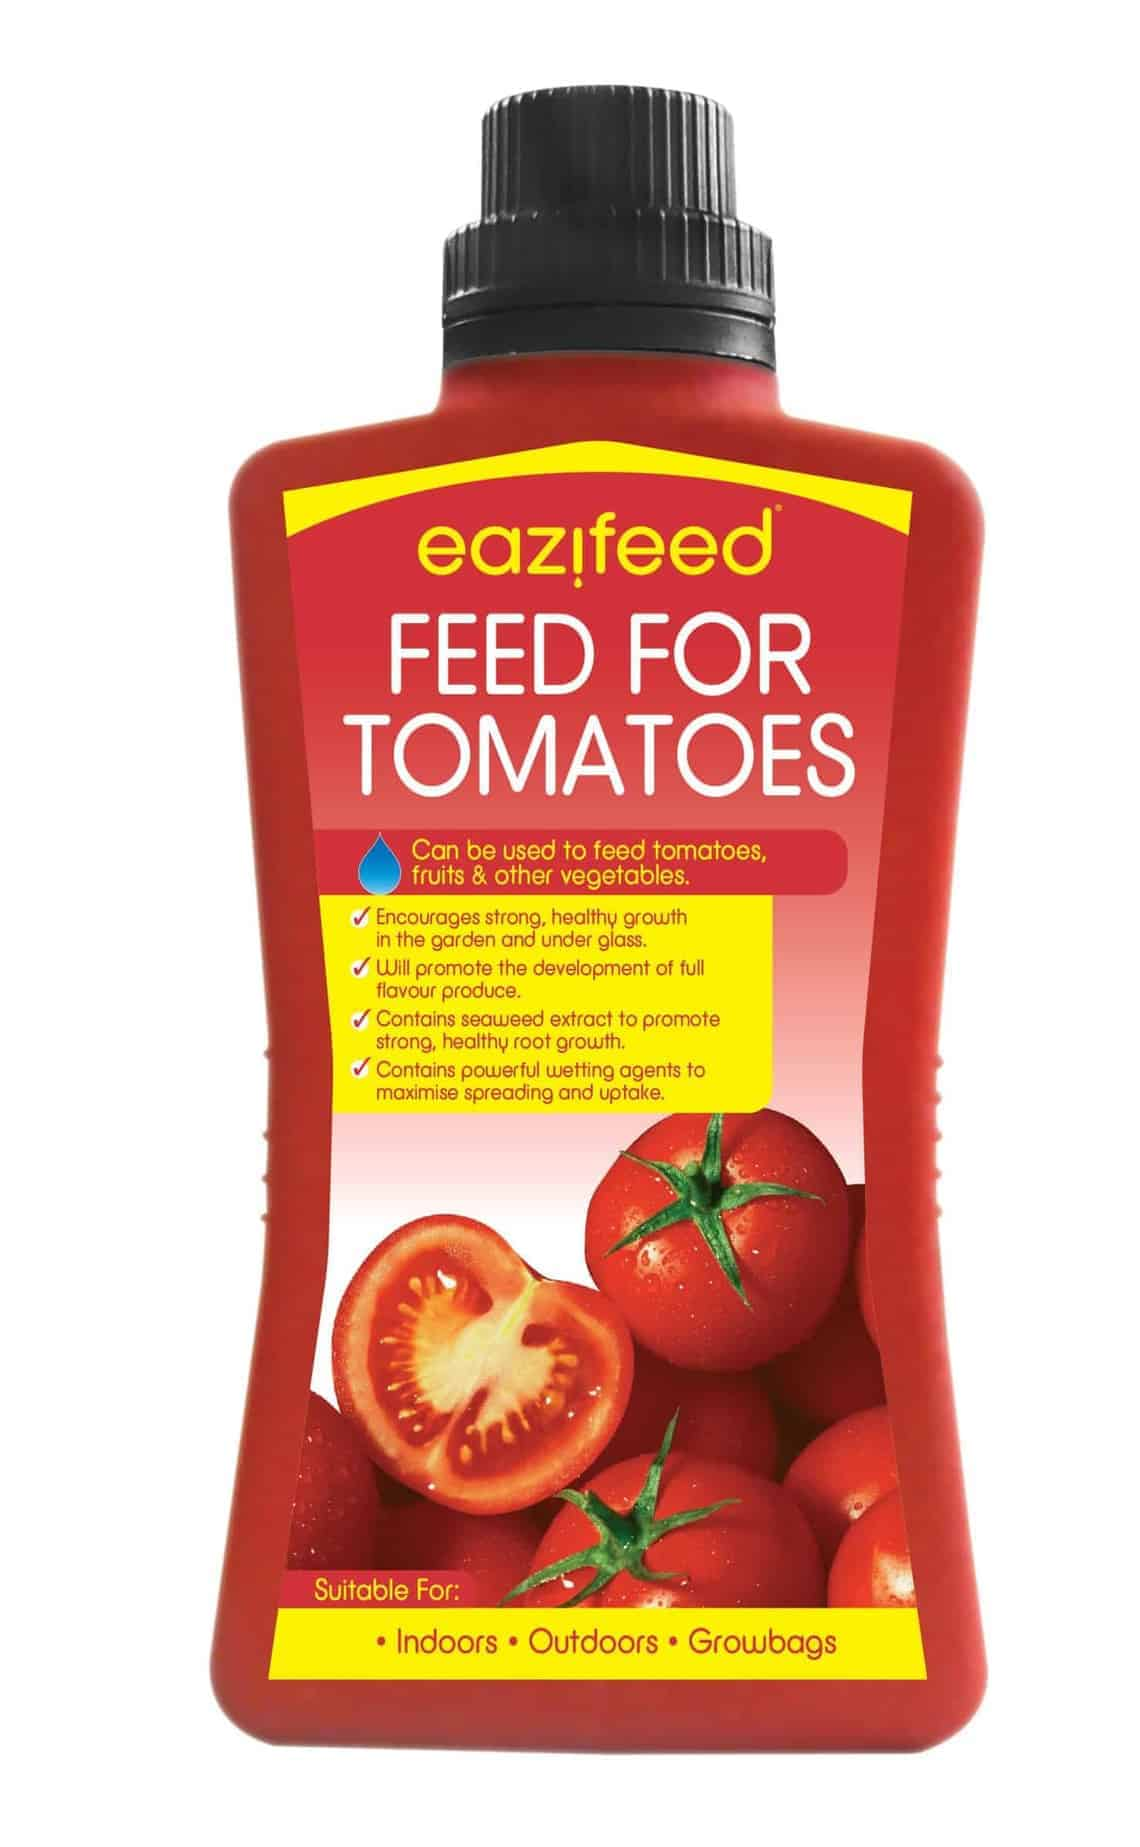 Eazifeed Feed For Tomatoes